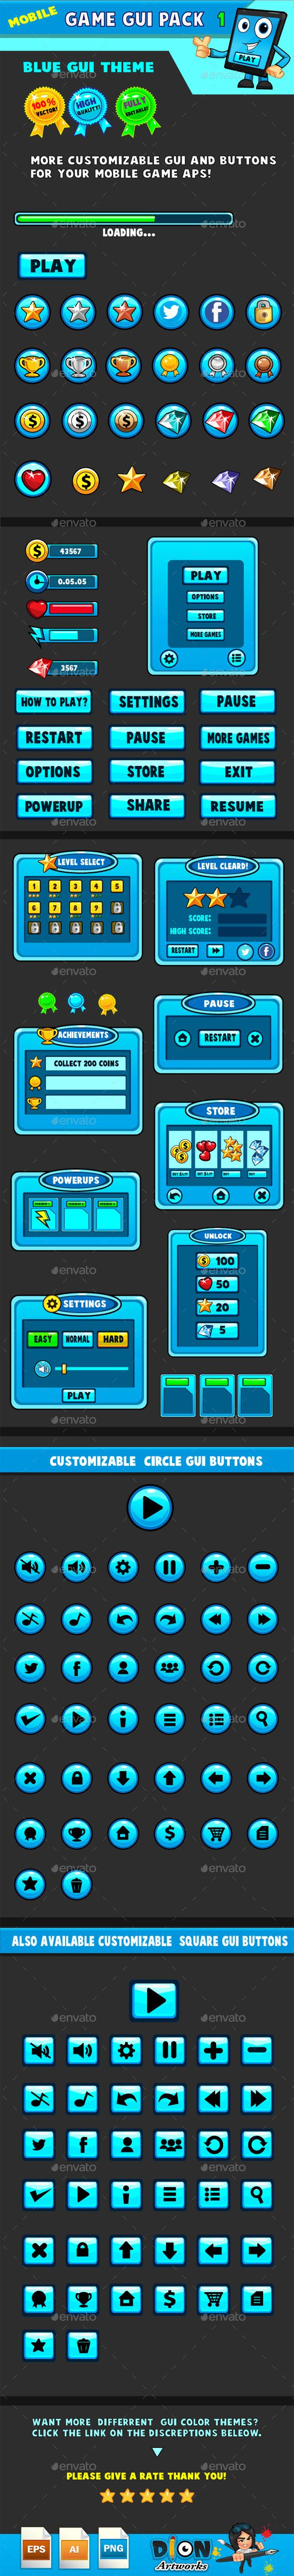 Mobile games GUI Pack Transparent PNG, Vector EPS, AI Illustrator. Download here: https://graphicriver.net/item/mobile-games-gui-pack1-blue-theme/9453260?ref=ksioks